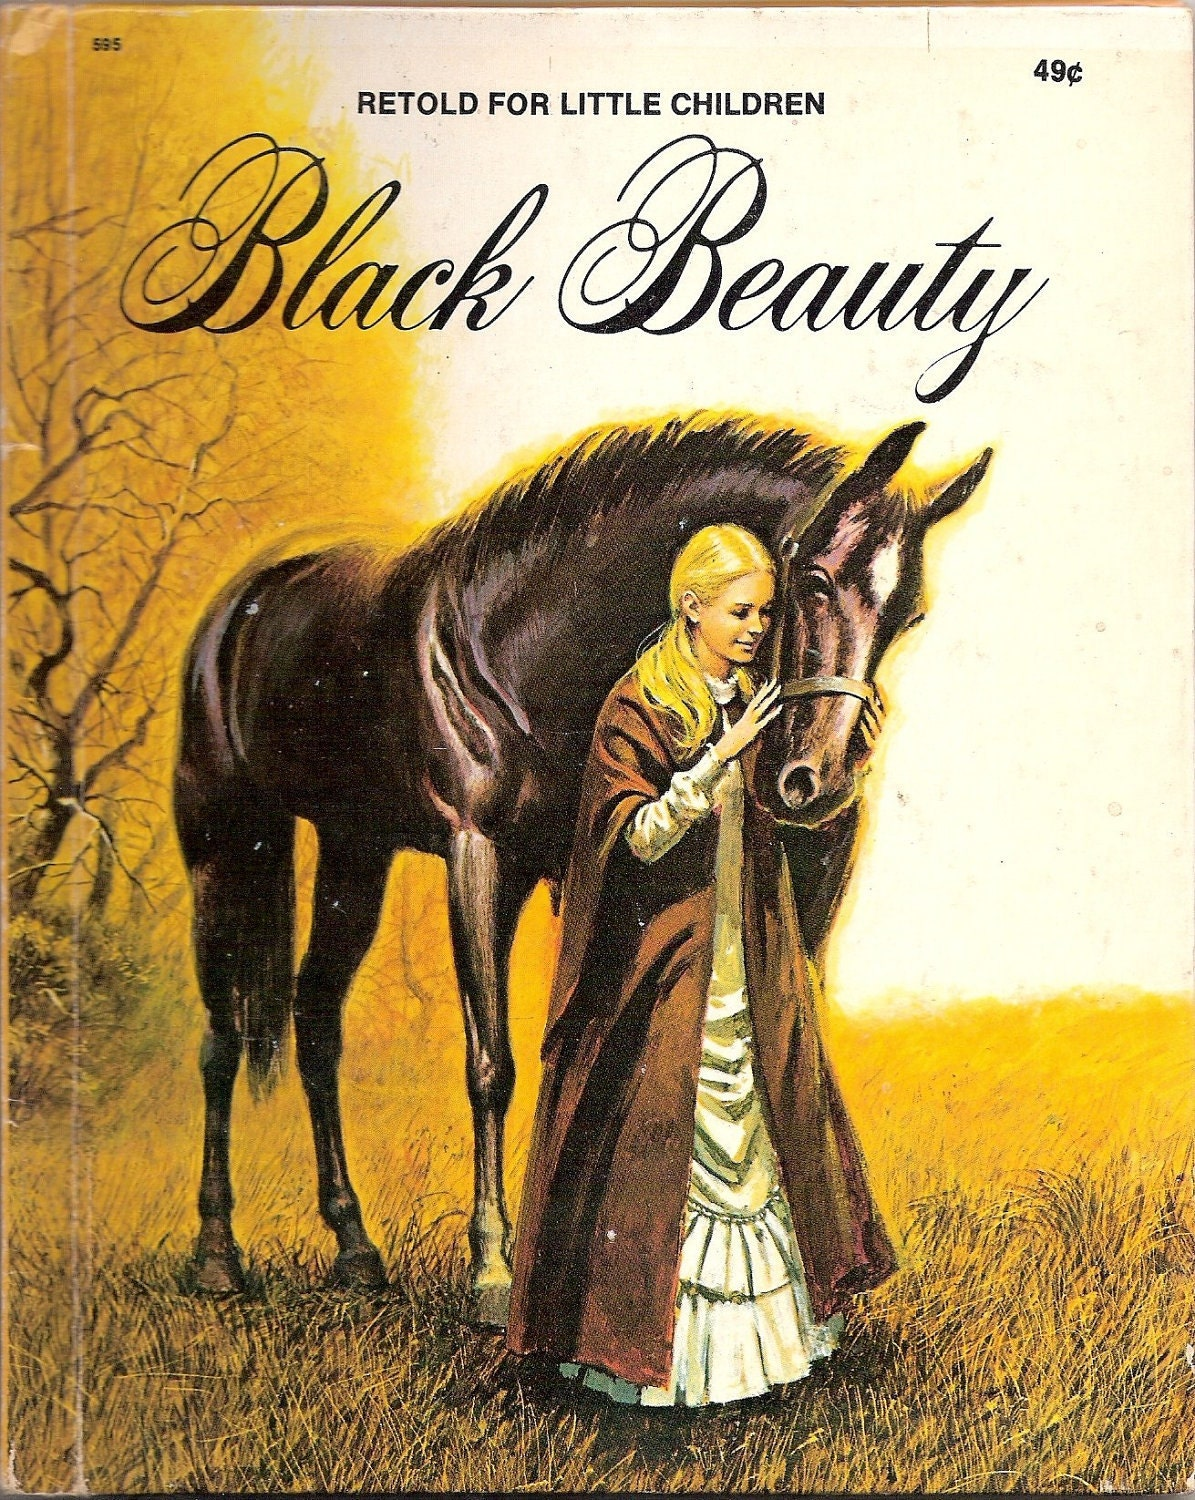 an analysis of the animals in the novel black beauty by anna sewell Black beauty is an 1877 polemic novel by anna sewell, tracing the life of the titular fictional horse from colthood to retirement today it is considered a classic of children's literature however, originally it was not written for children, but as an effort to draw attention to the wildly varying treatment of horses in victorian england.